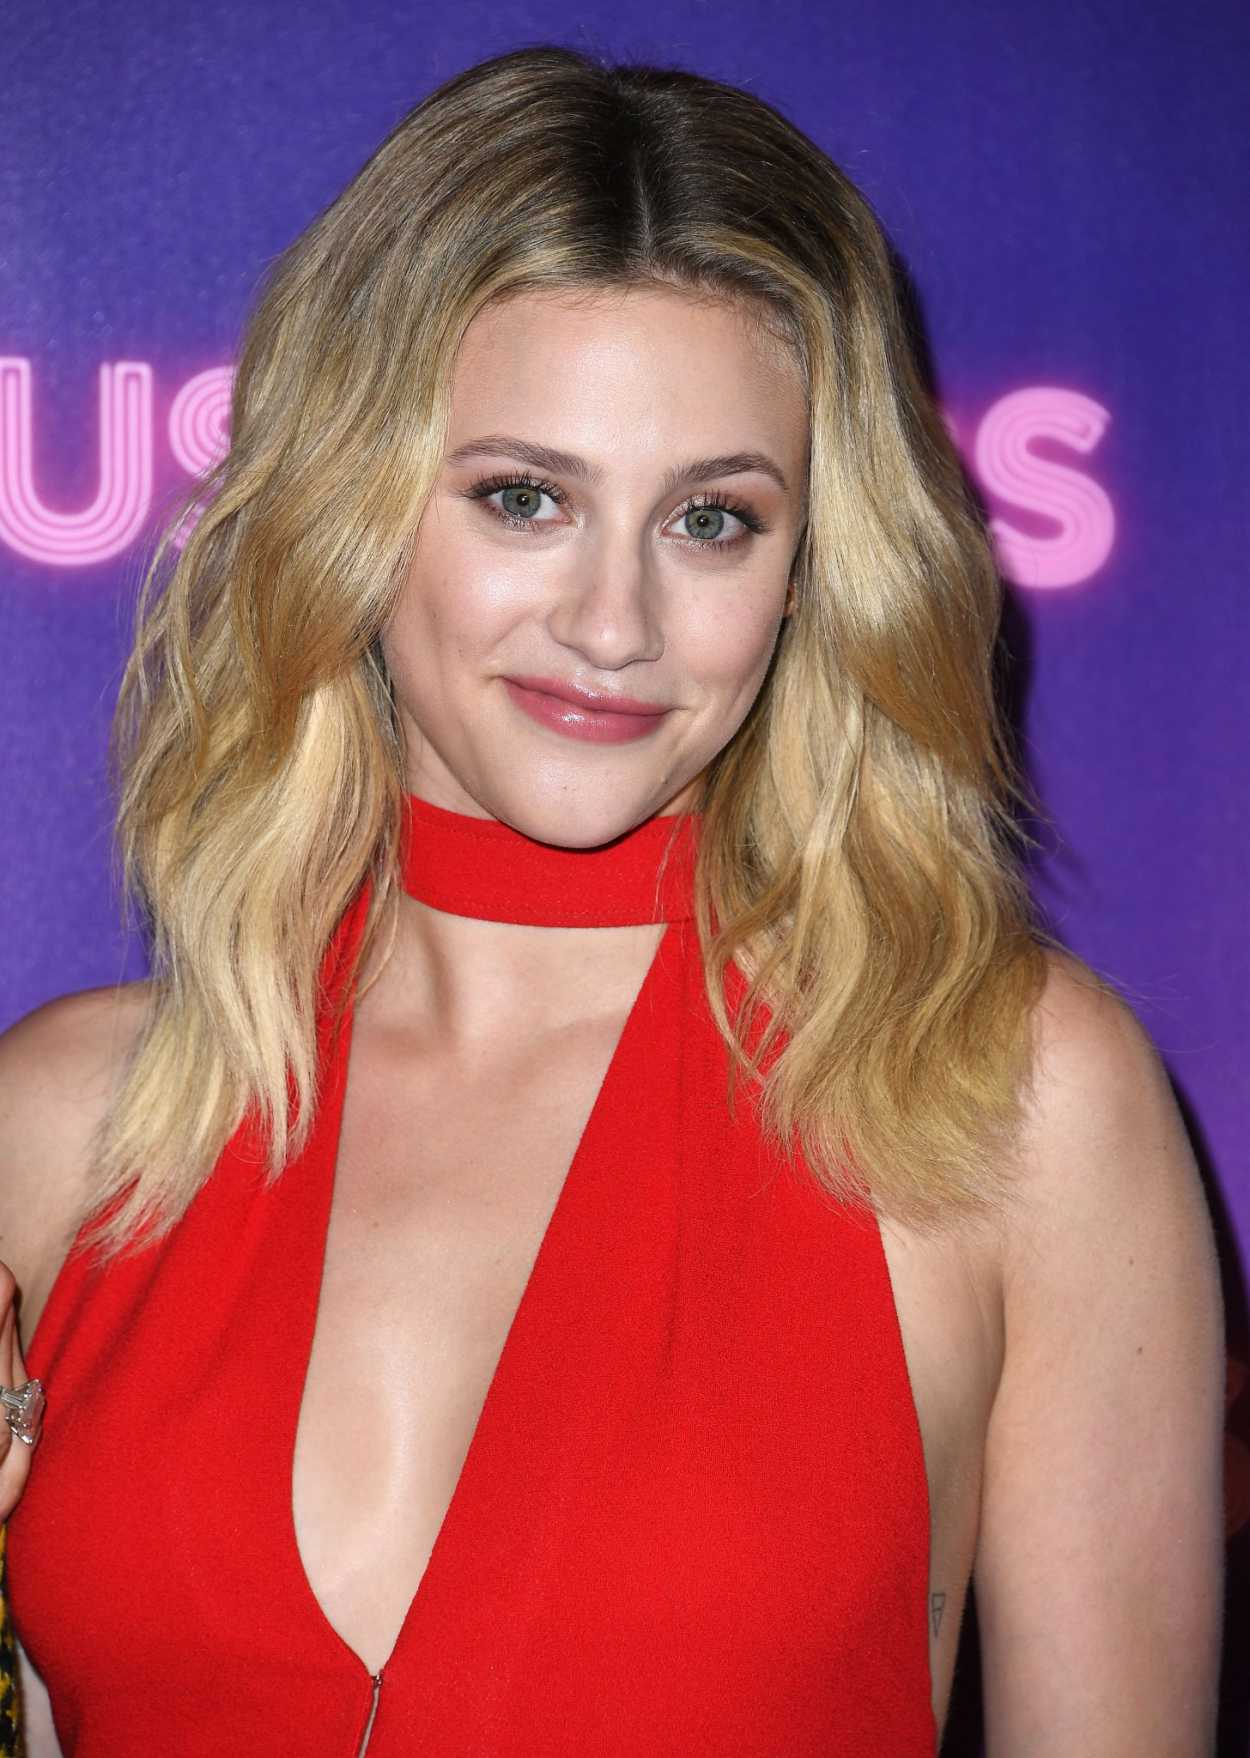 Lili Reinhart Attends Hustlers Photocall In Los Angeles 08